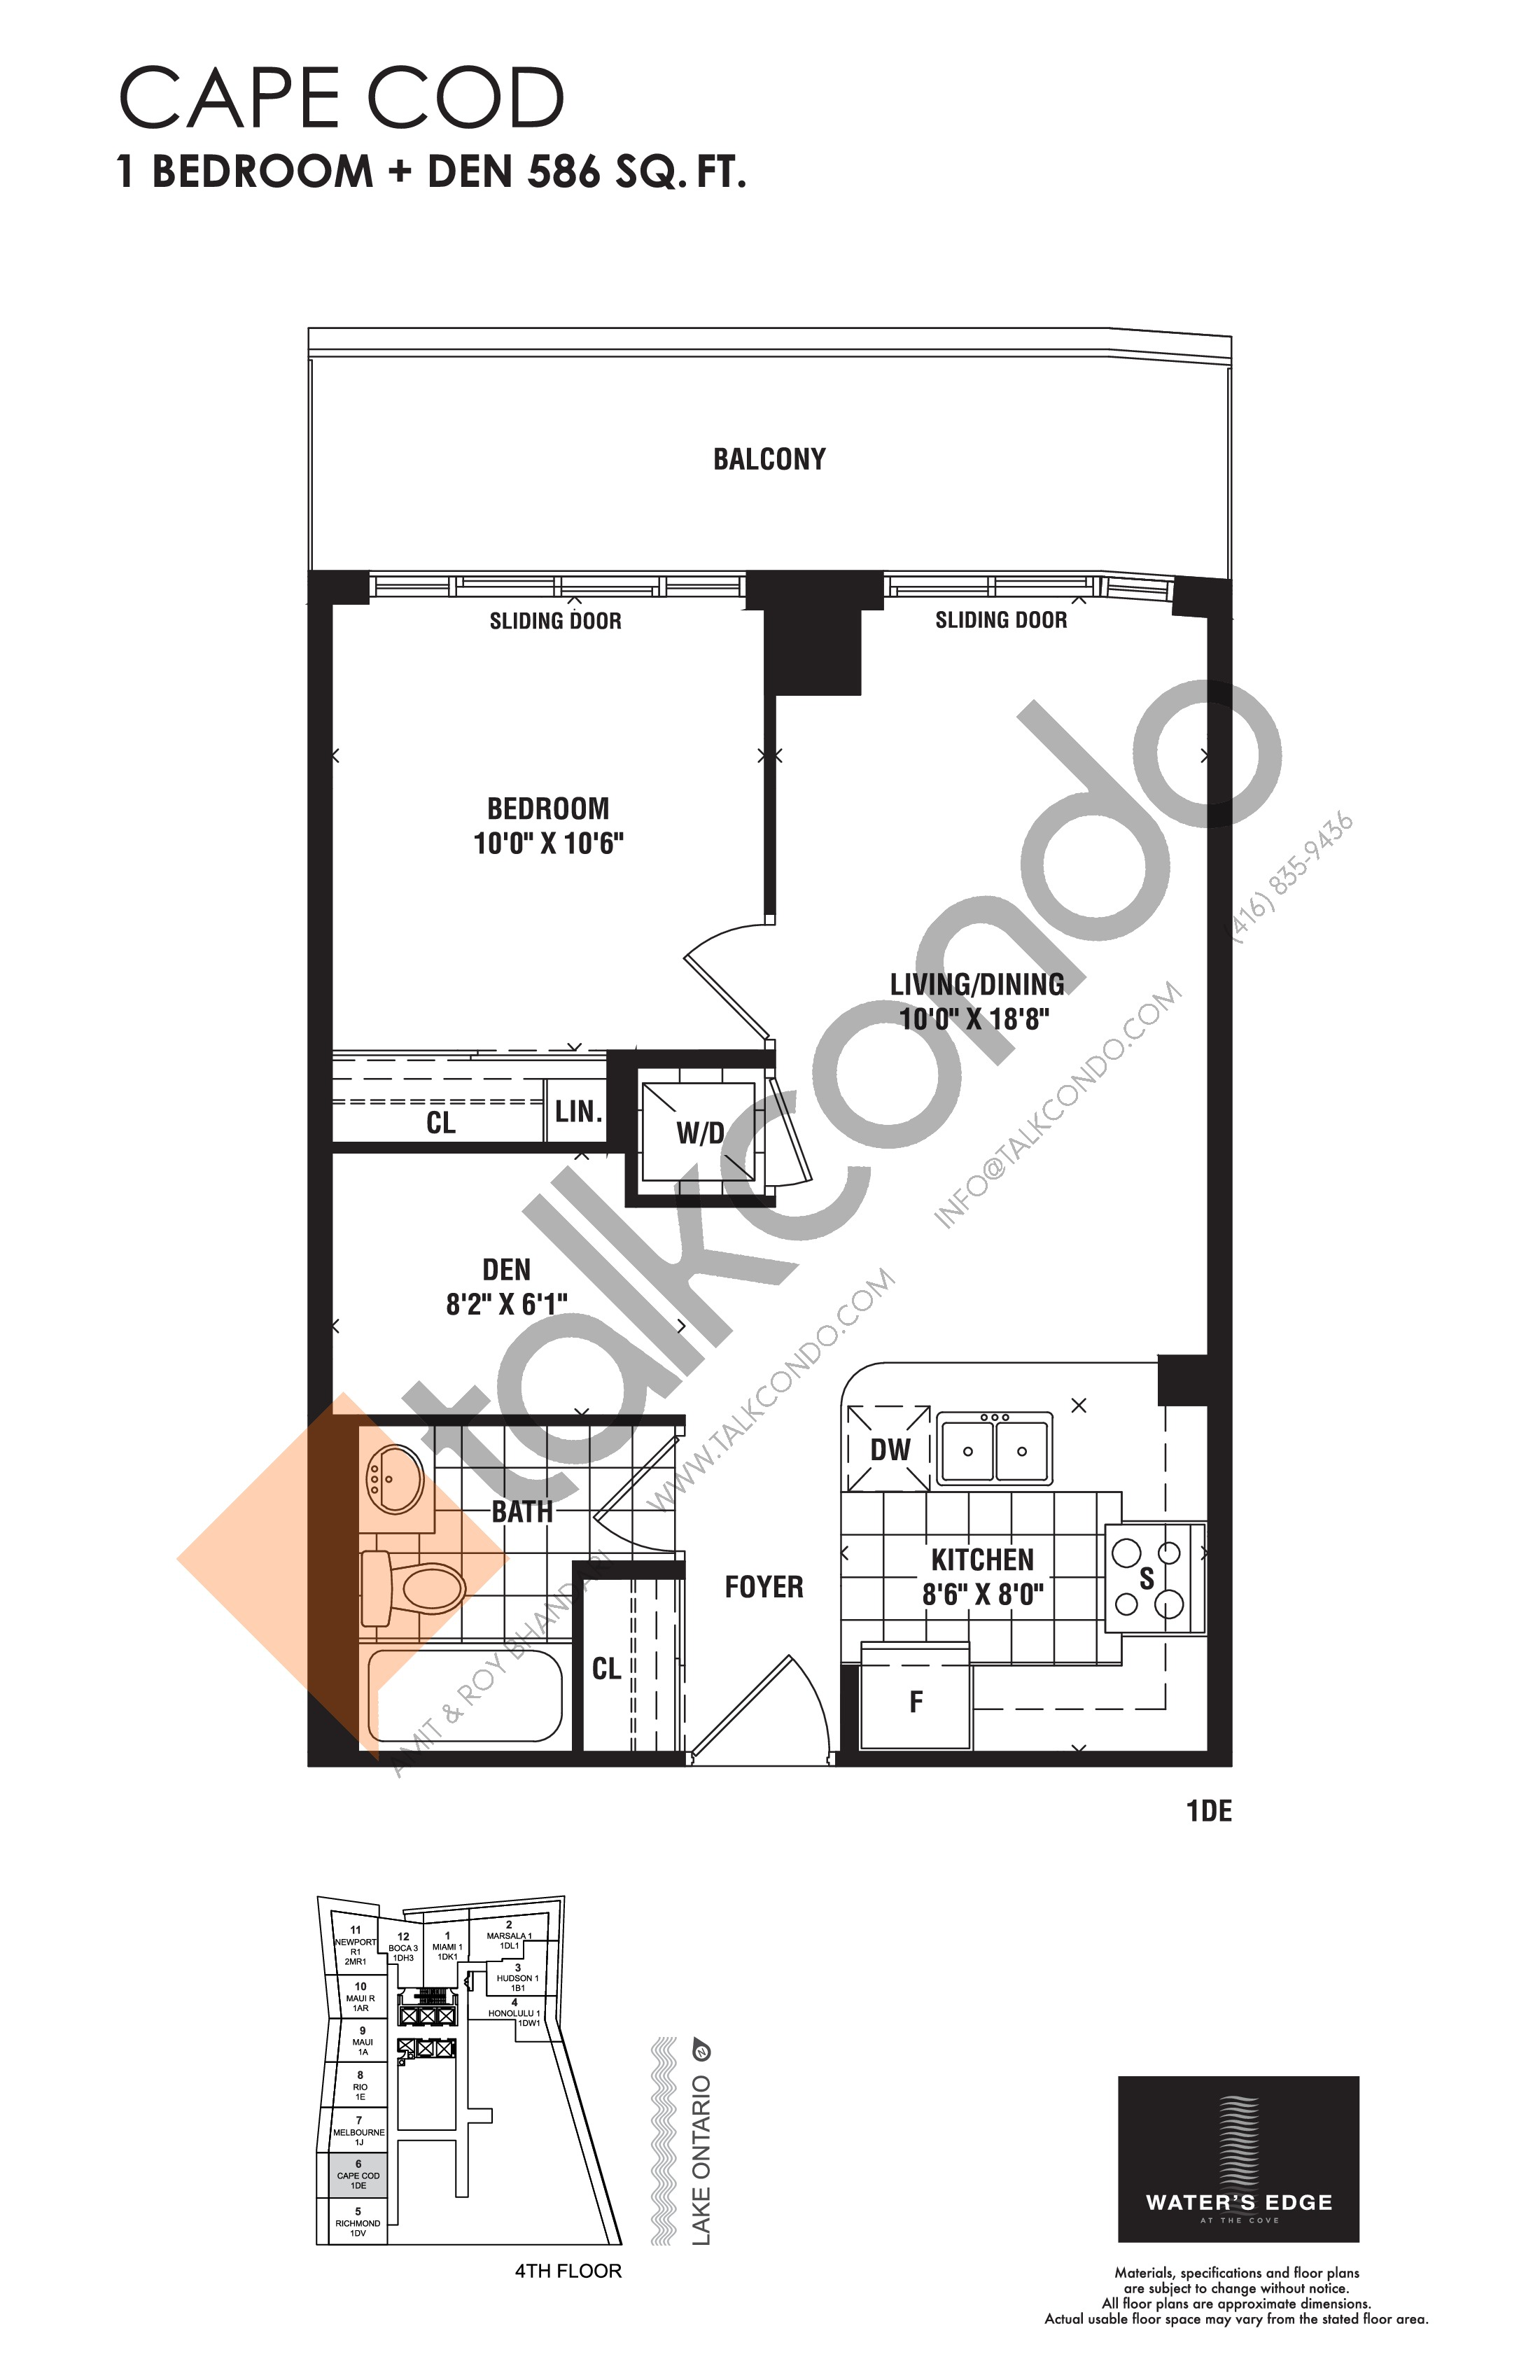 Cape Cod Floor Plan at Water's Edge at the Cove Condos - 586 sq.ft